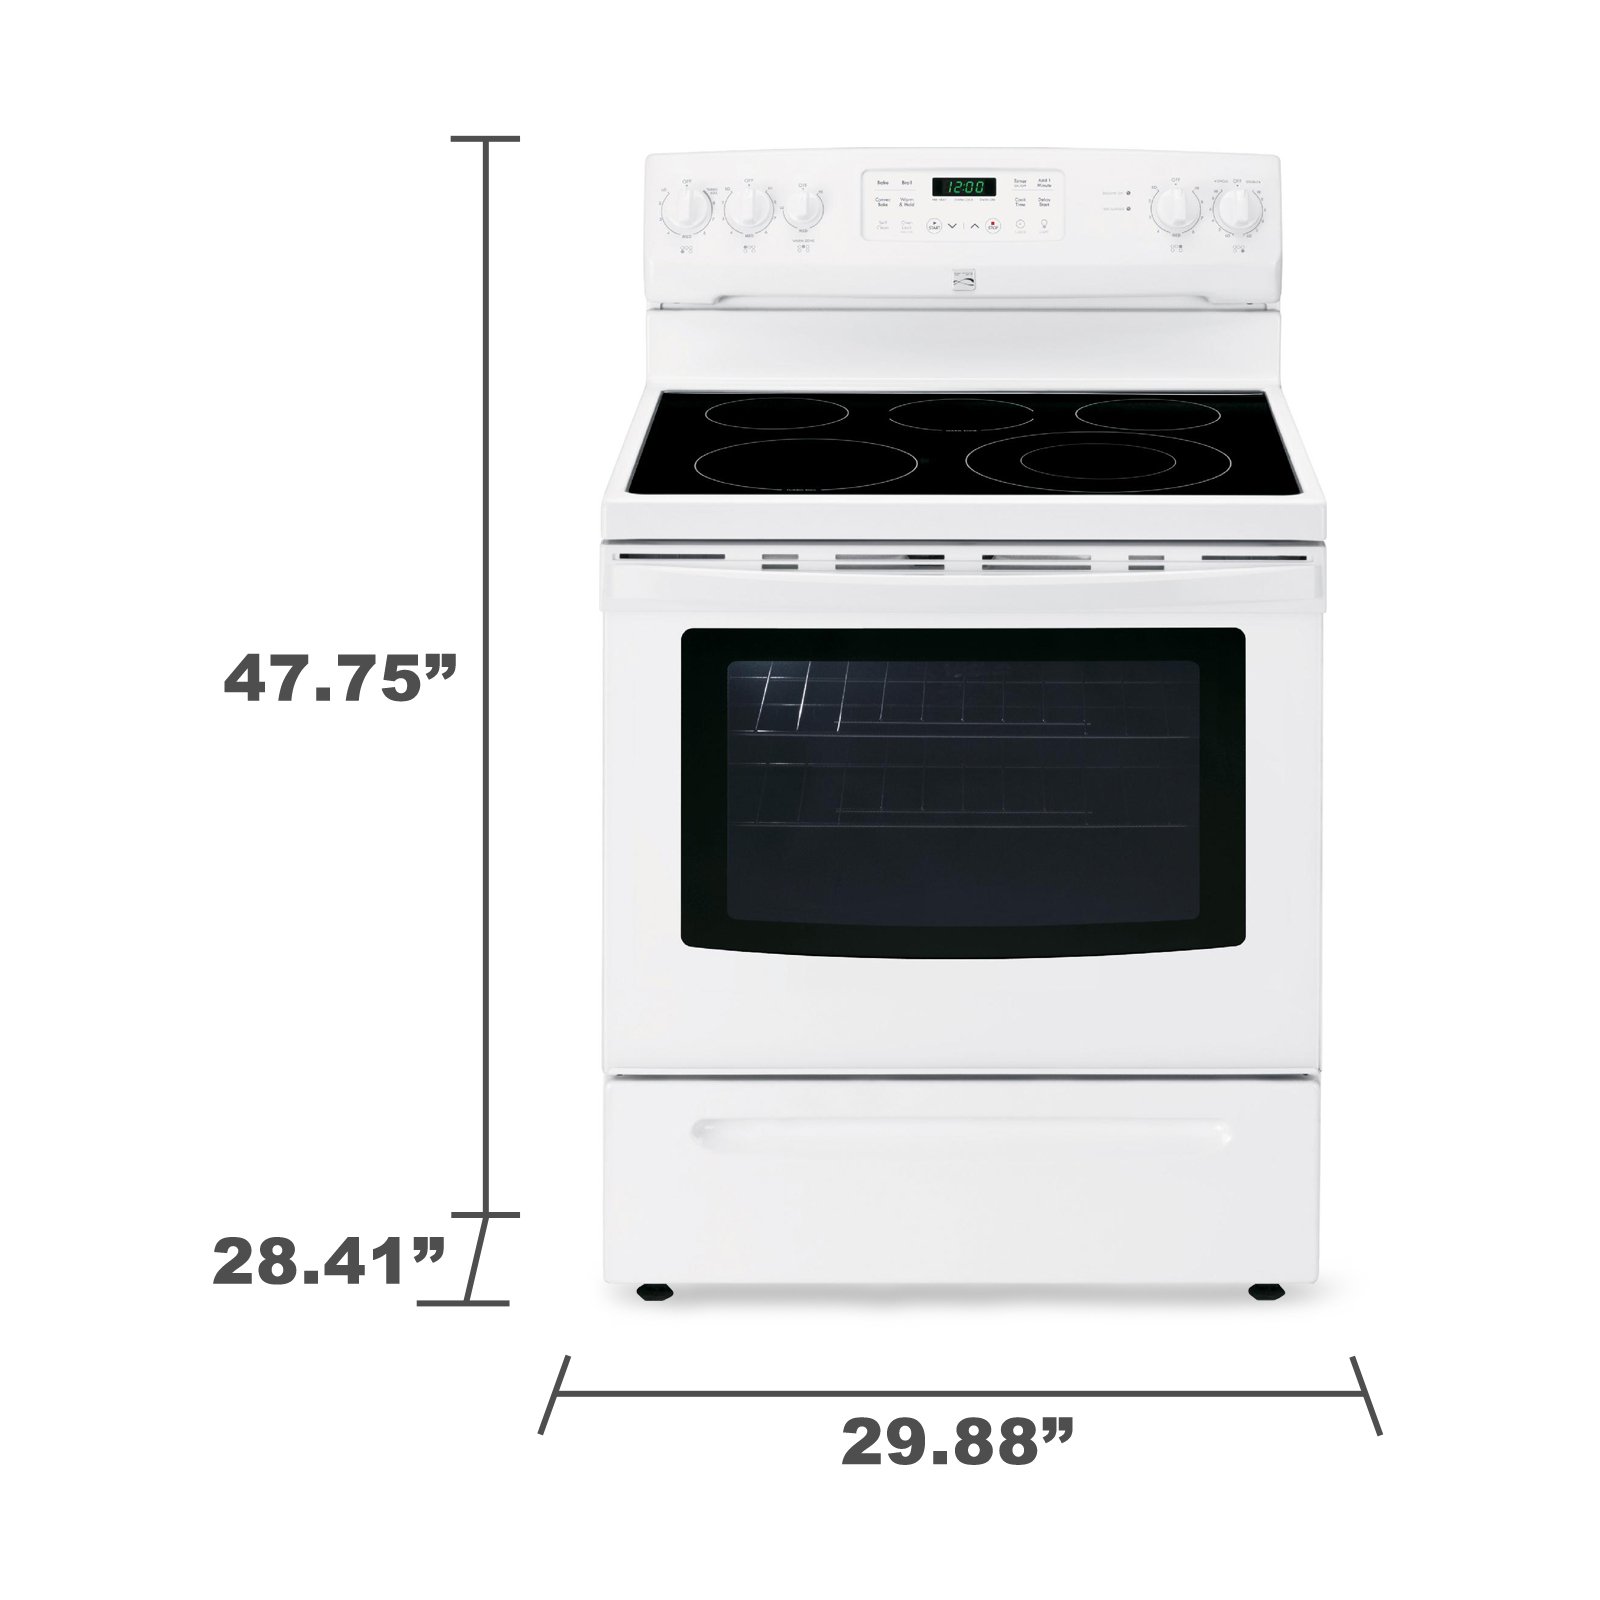 Kenmore 5.4 cu. ft. Electric Range w/ Convection Oven - White